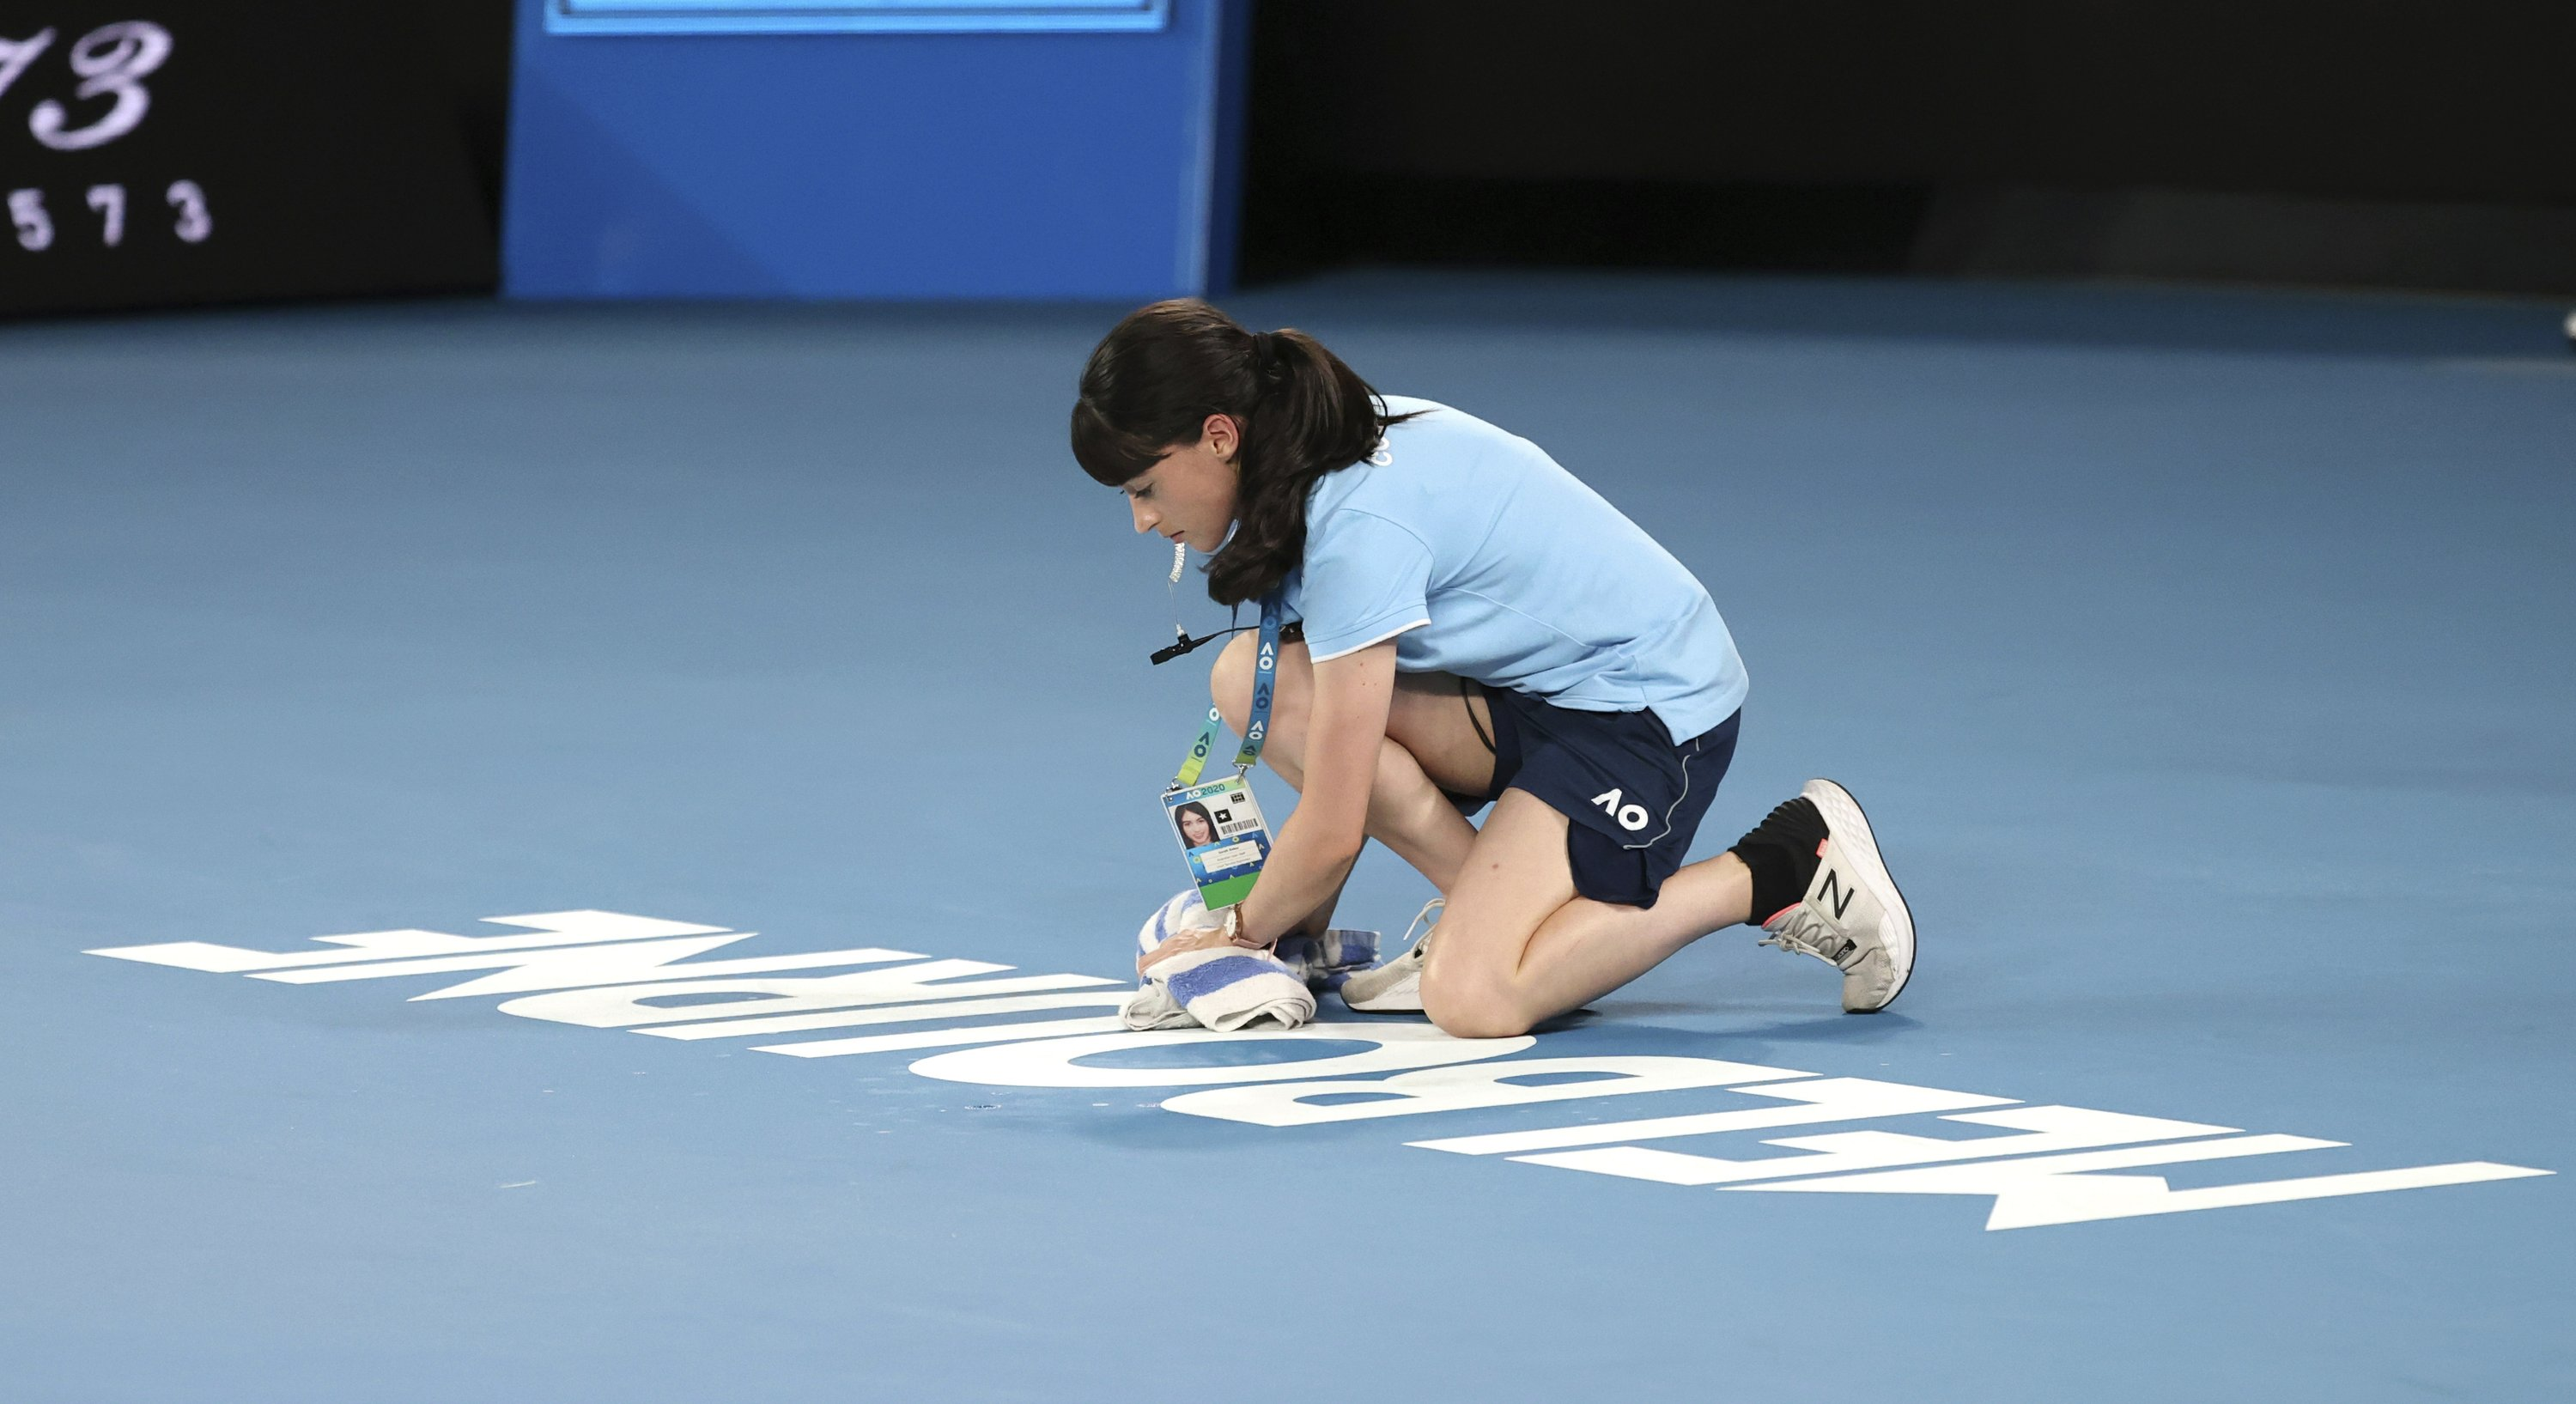 The Latest Leaky Roof On Rod Laver Has Ball Kids Mopping Up